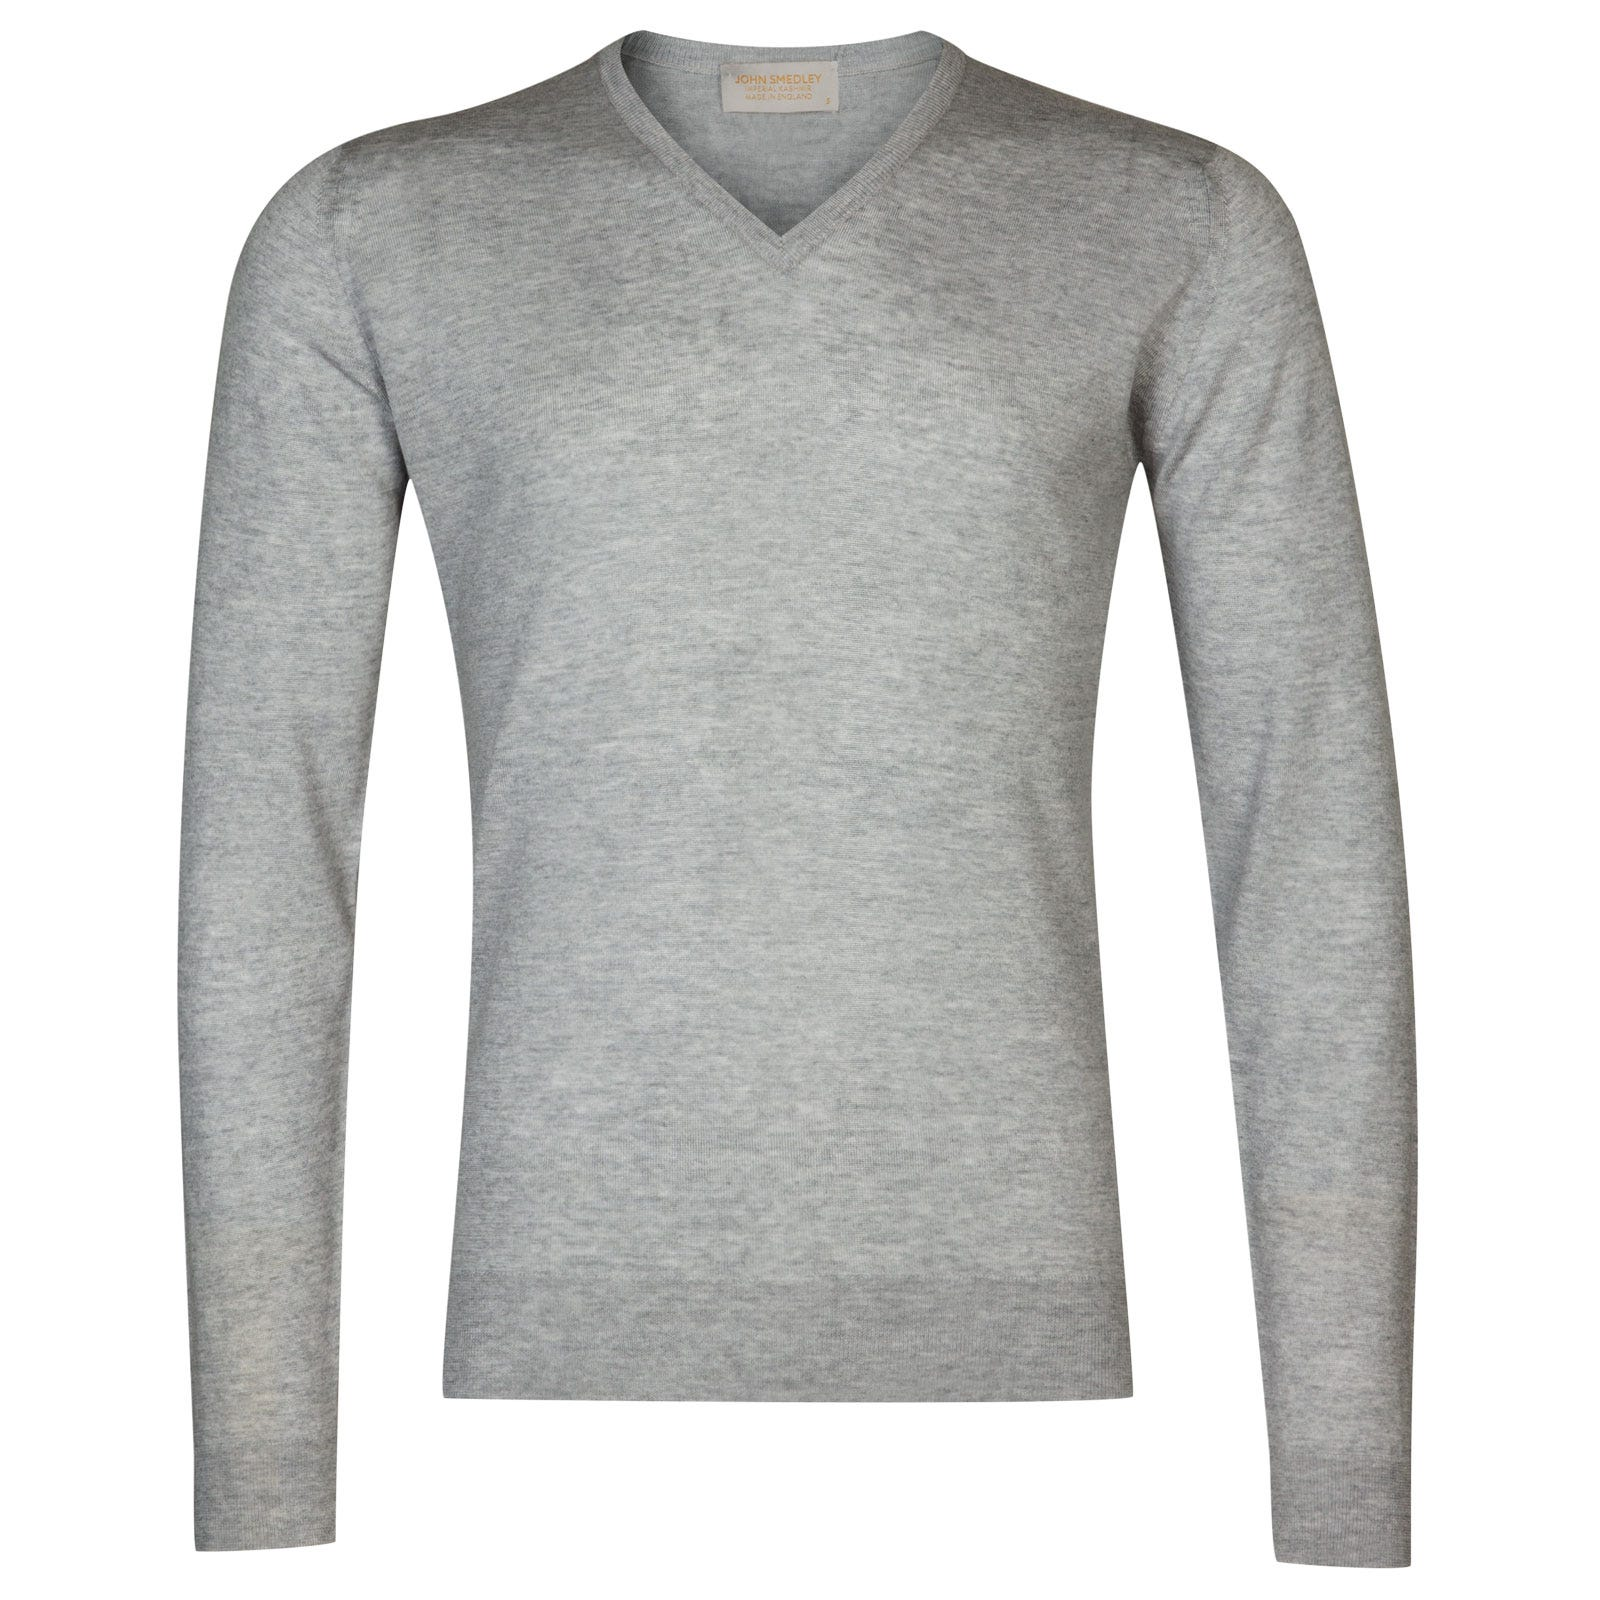 John Smedley newark Merino Wool and Cashmere Pullover in Soft Grey-L